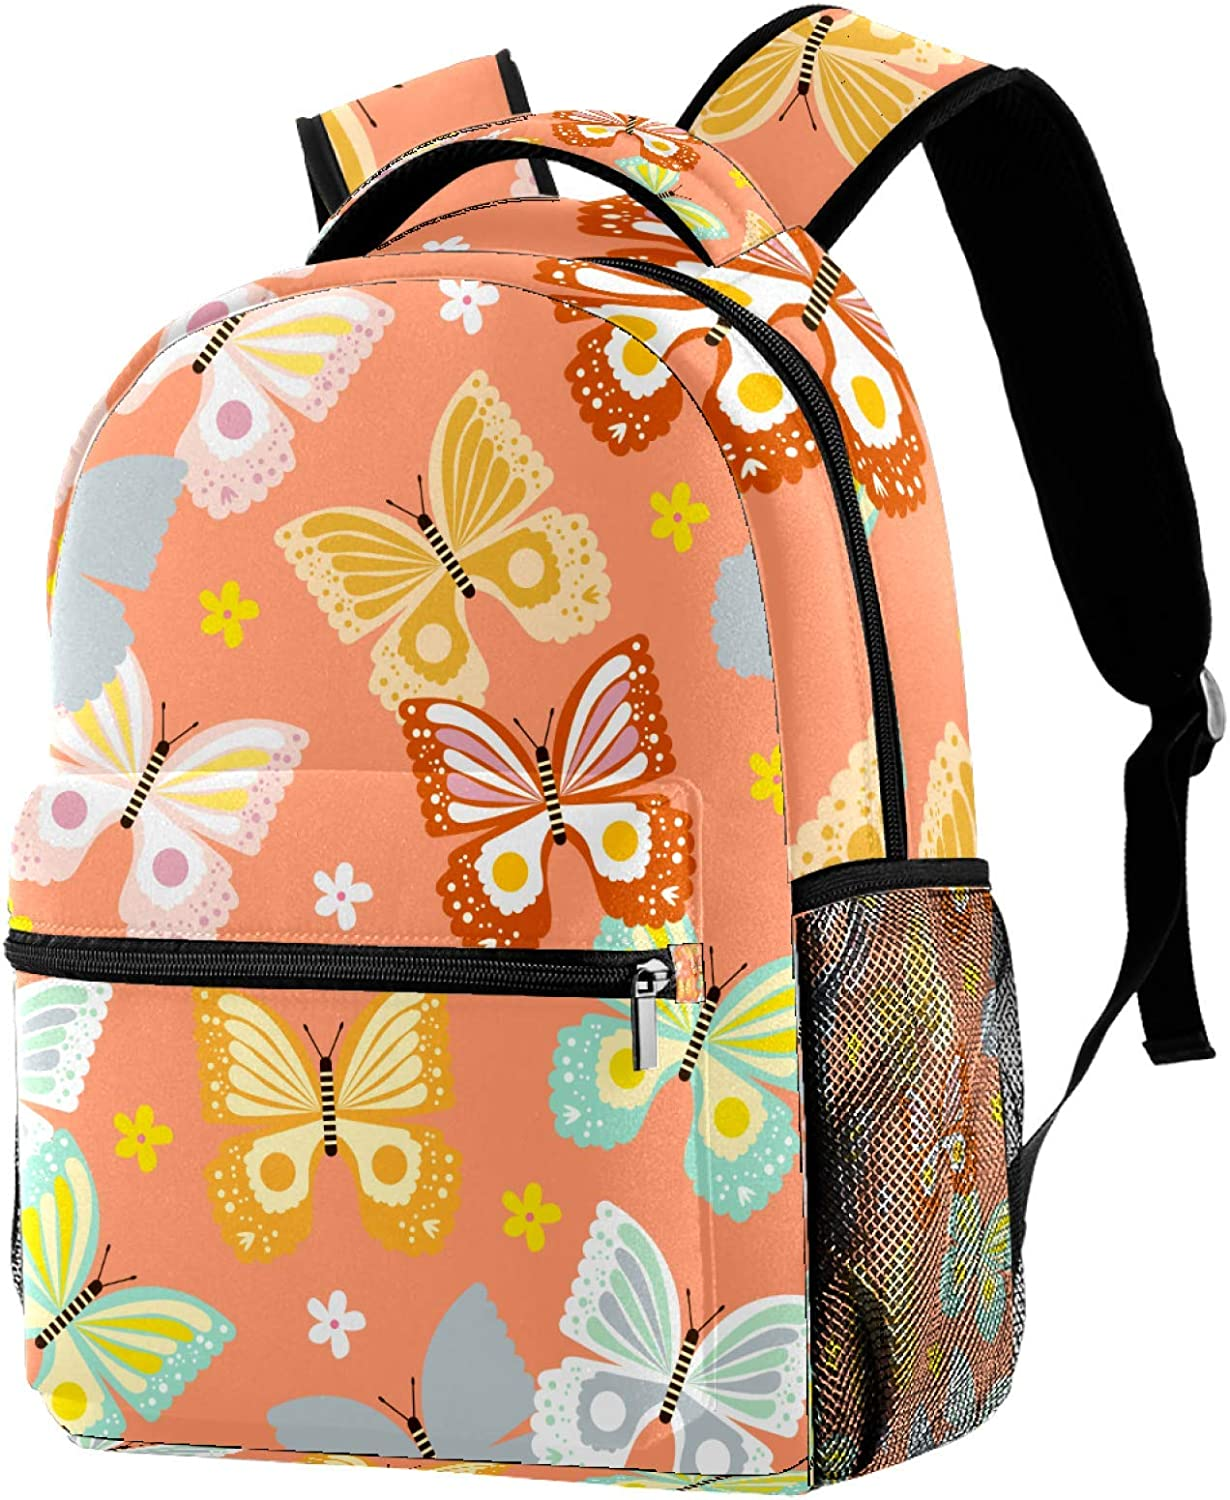 Casual 2021 spring and summer new Outdoor favorite Backpack With Adjustable Strap For Women Men Girl